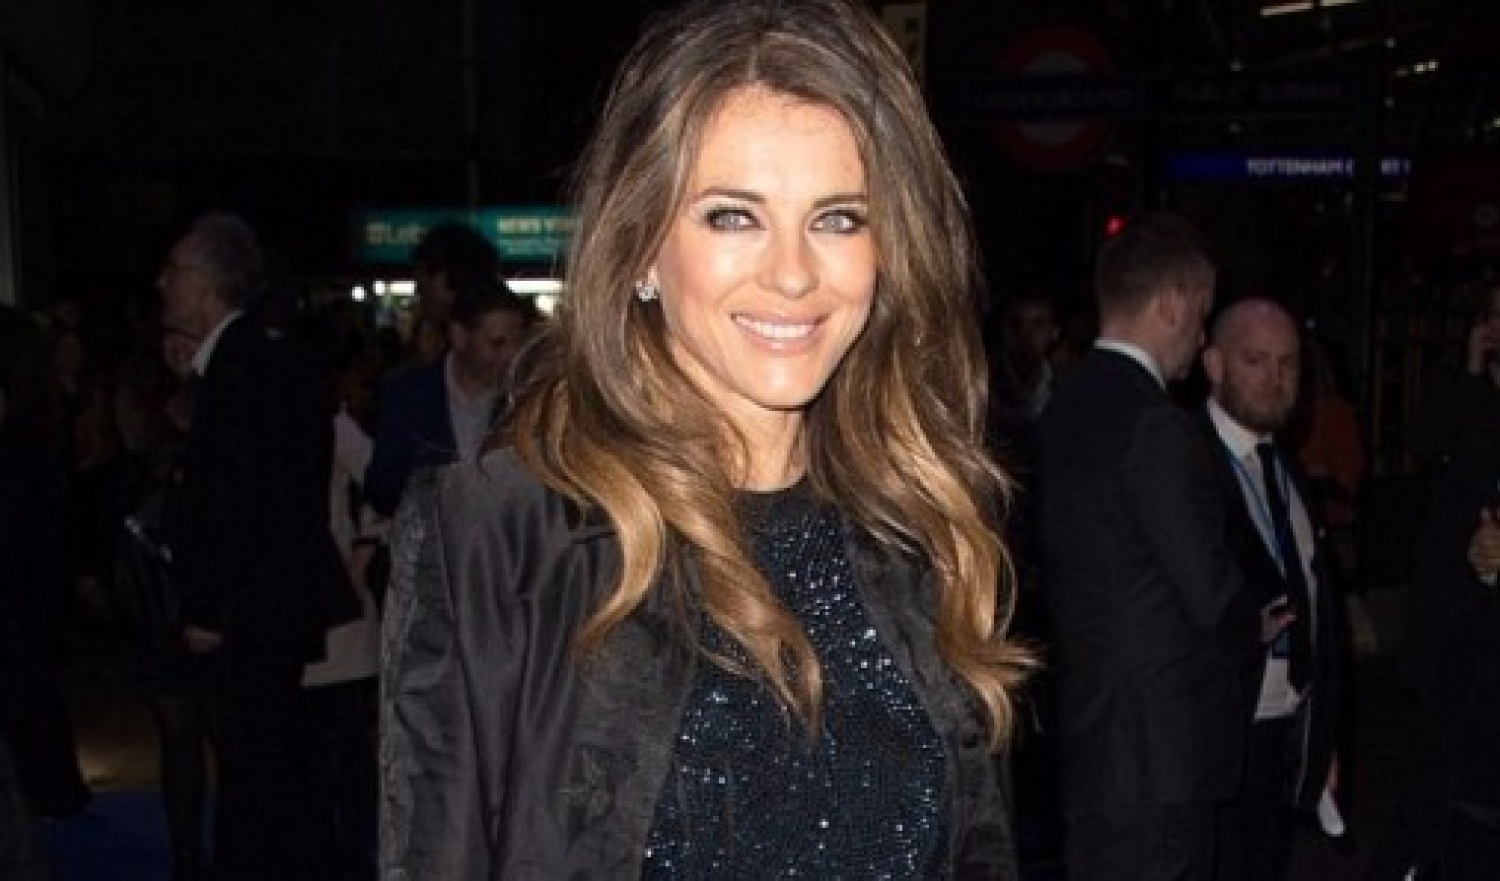 Elizabeth Hurley, 51, shows her legs at An American in Paris